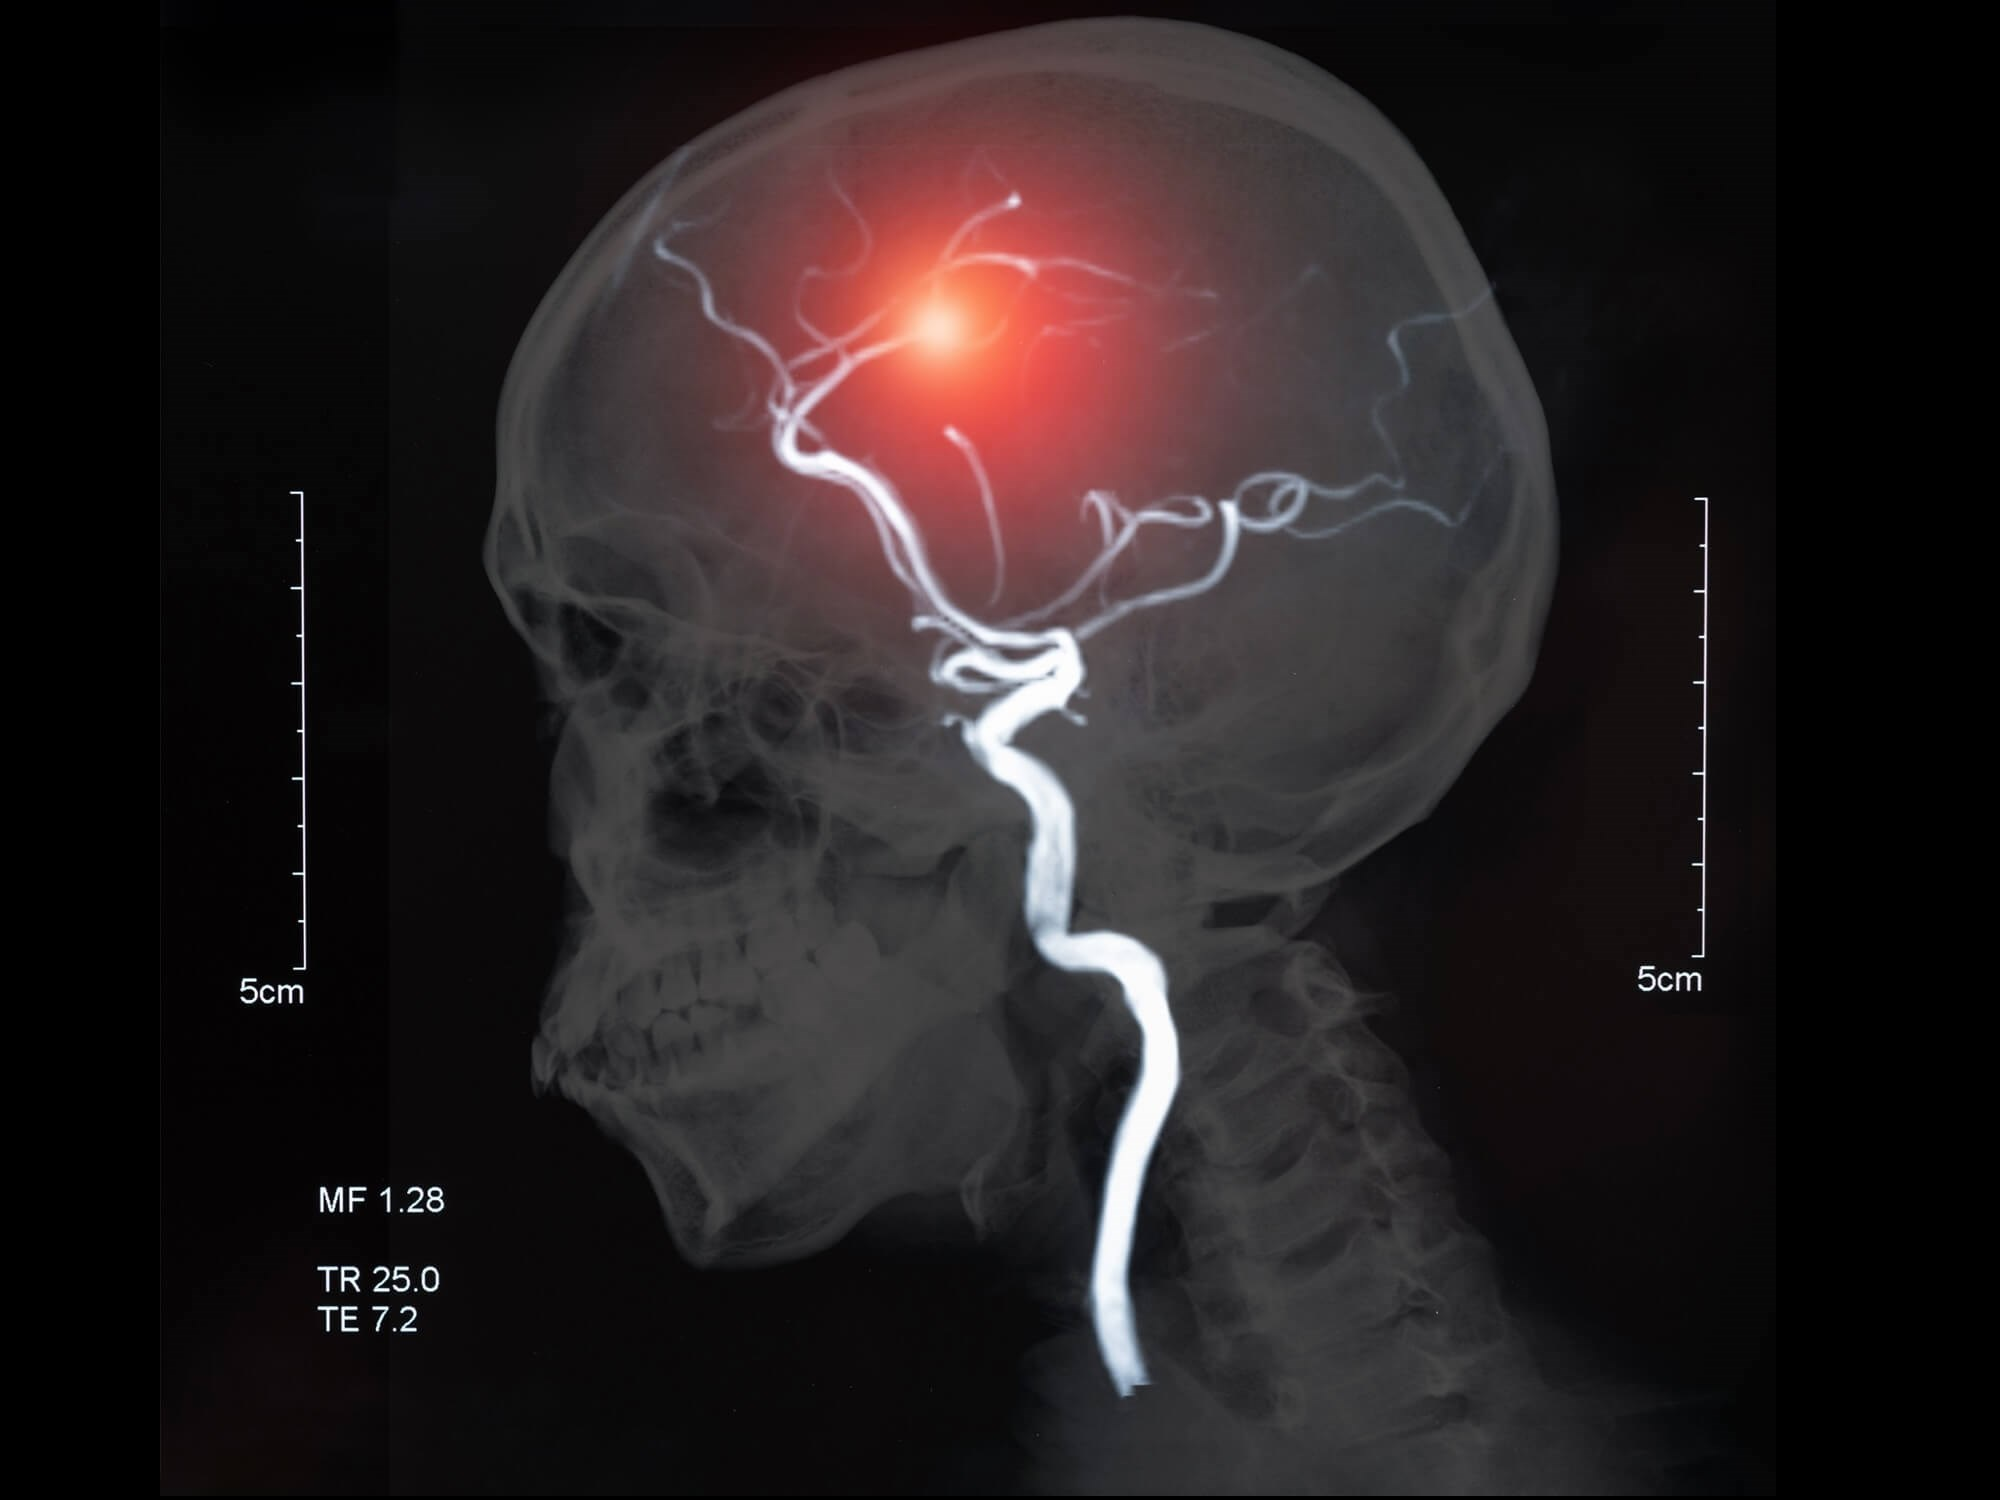 According to the study investigators, cerebrovascular disease may account for approximately 50% of new cases of epilepsy in patients older than age 65.